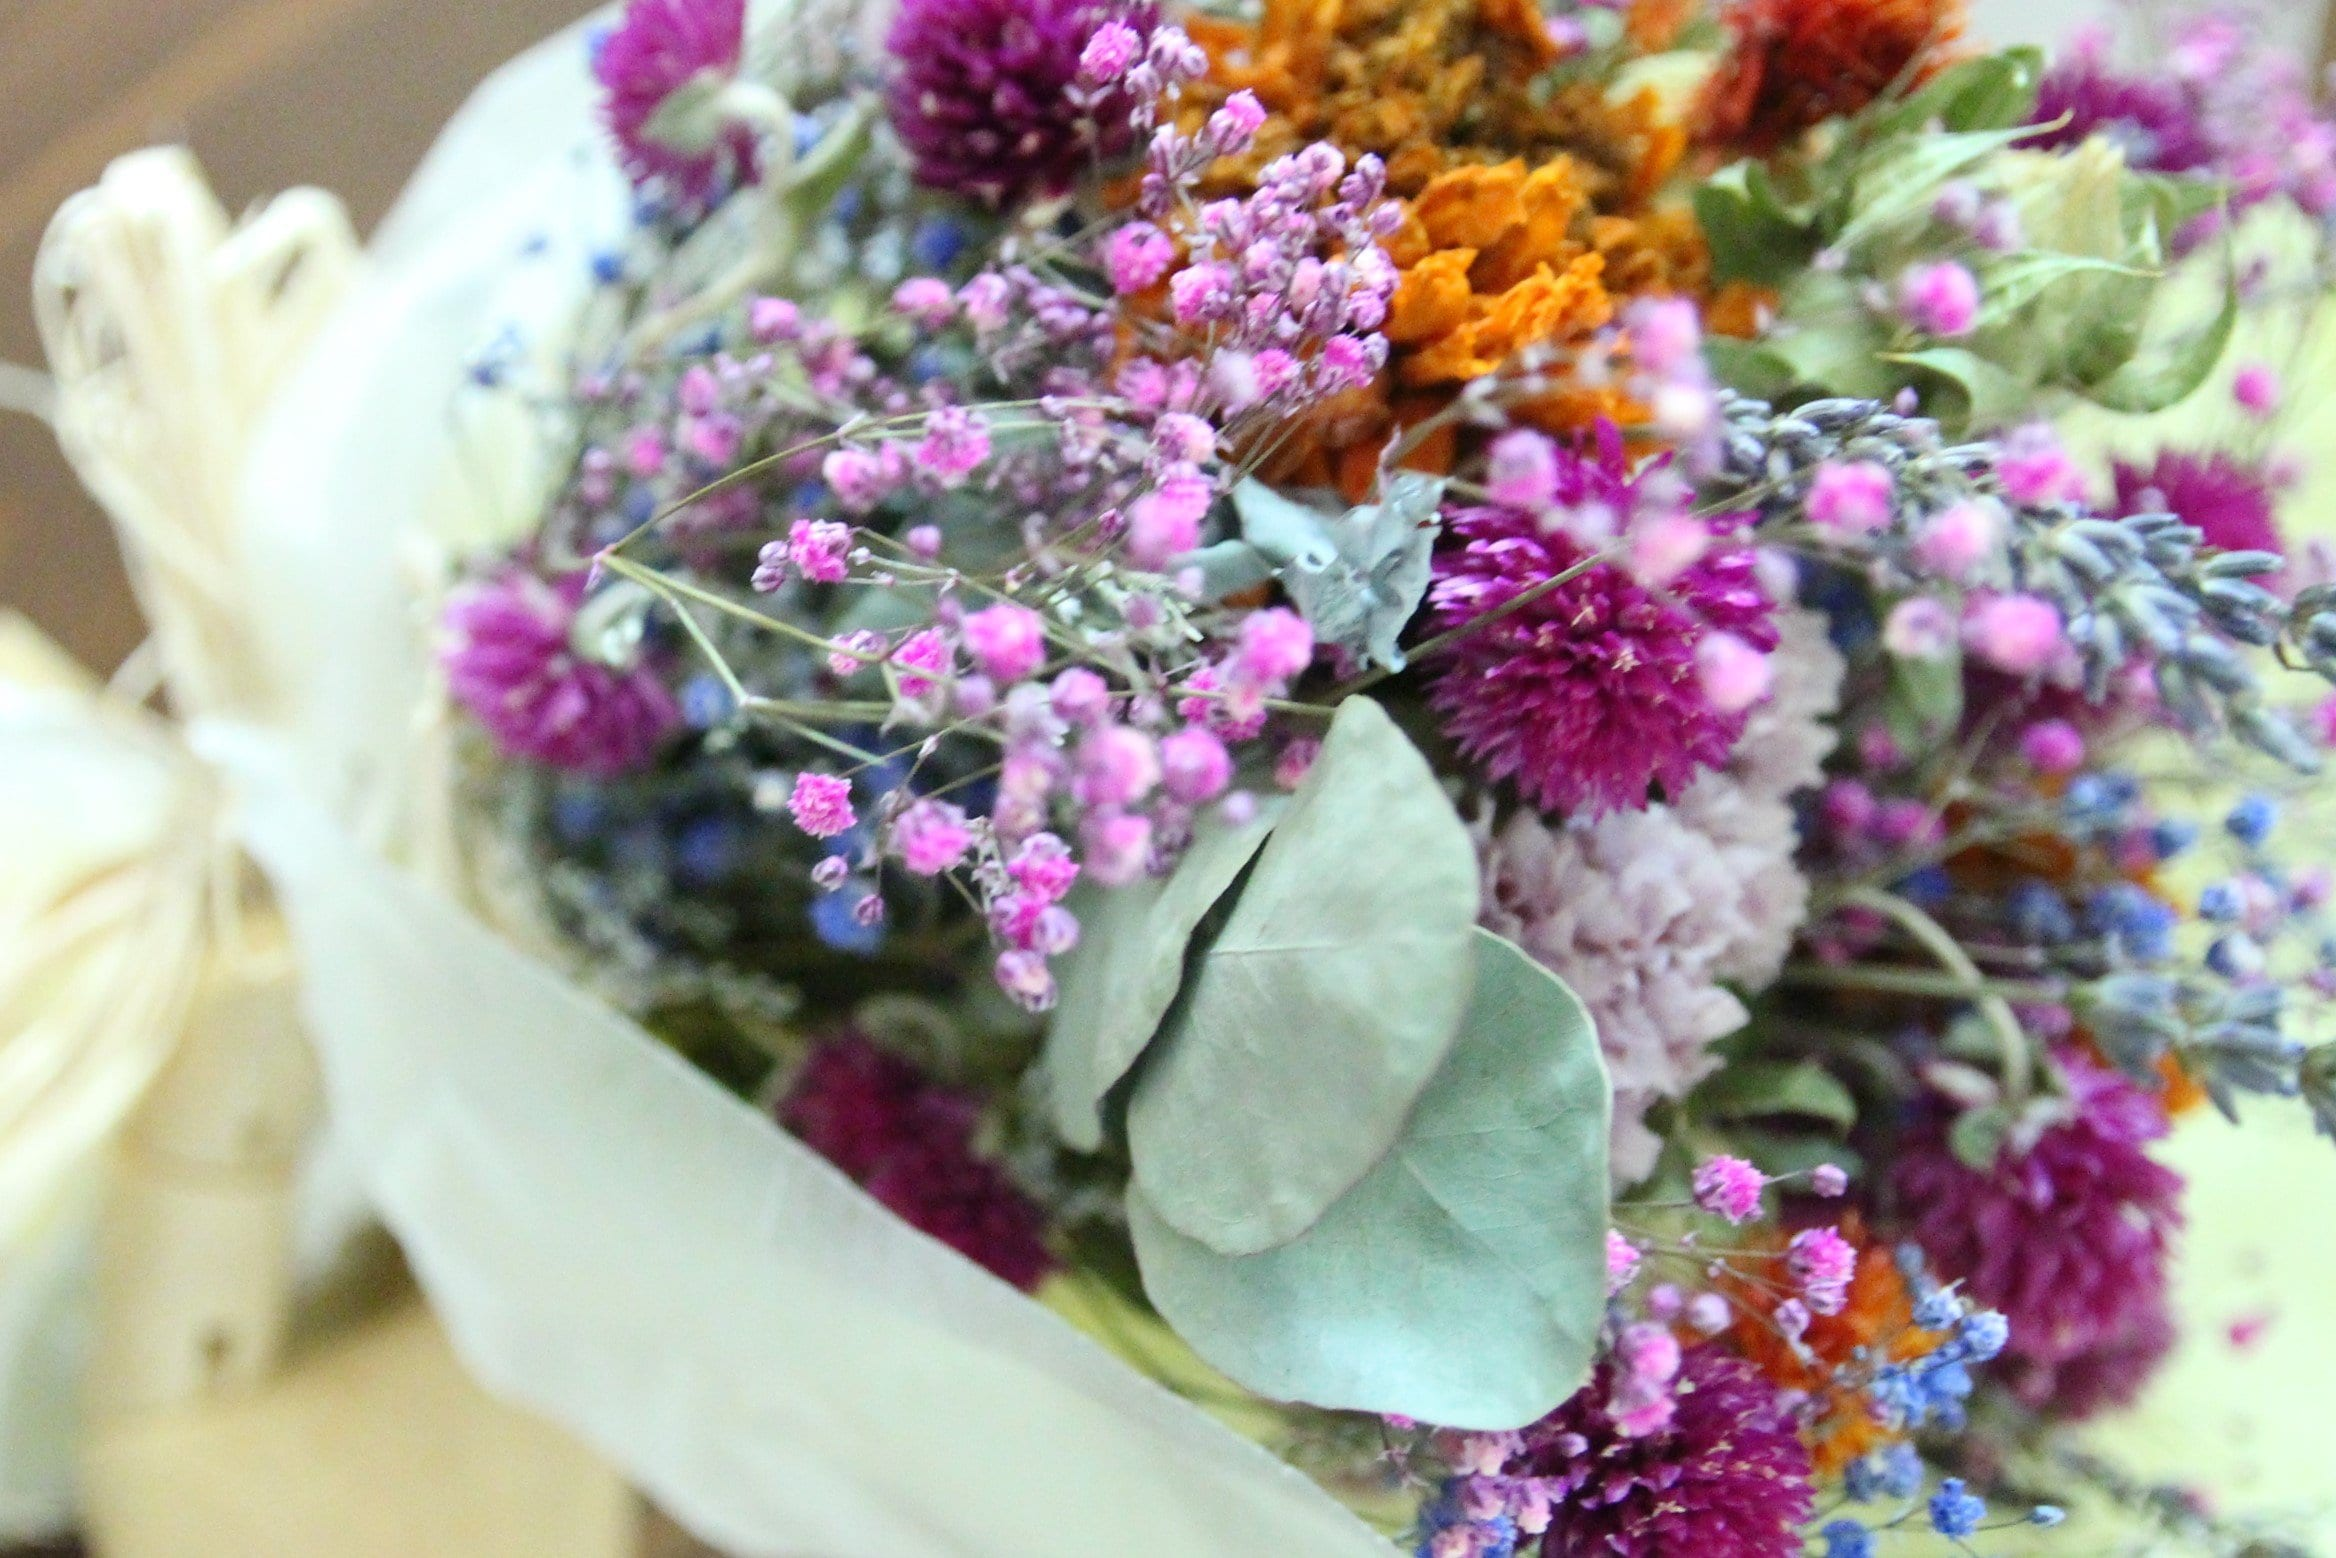 colorful driedflower bouquet